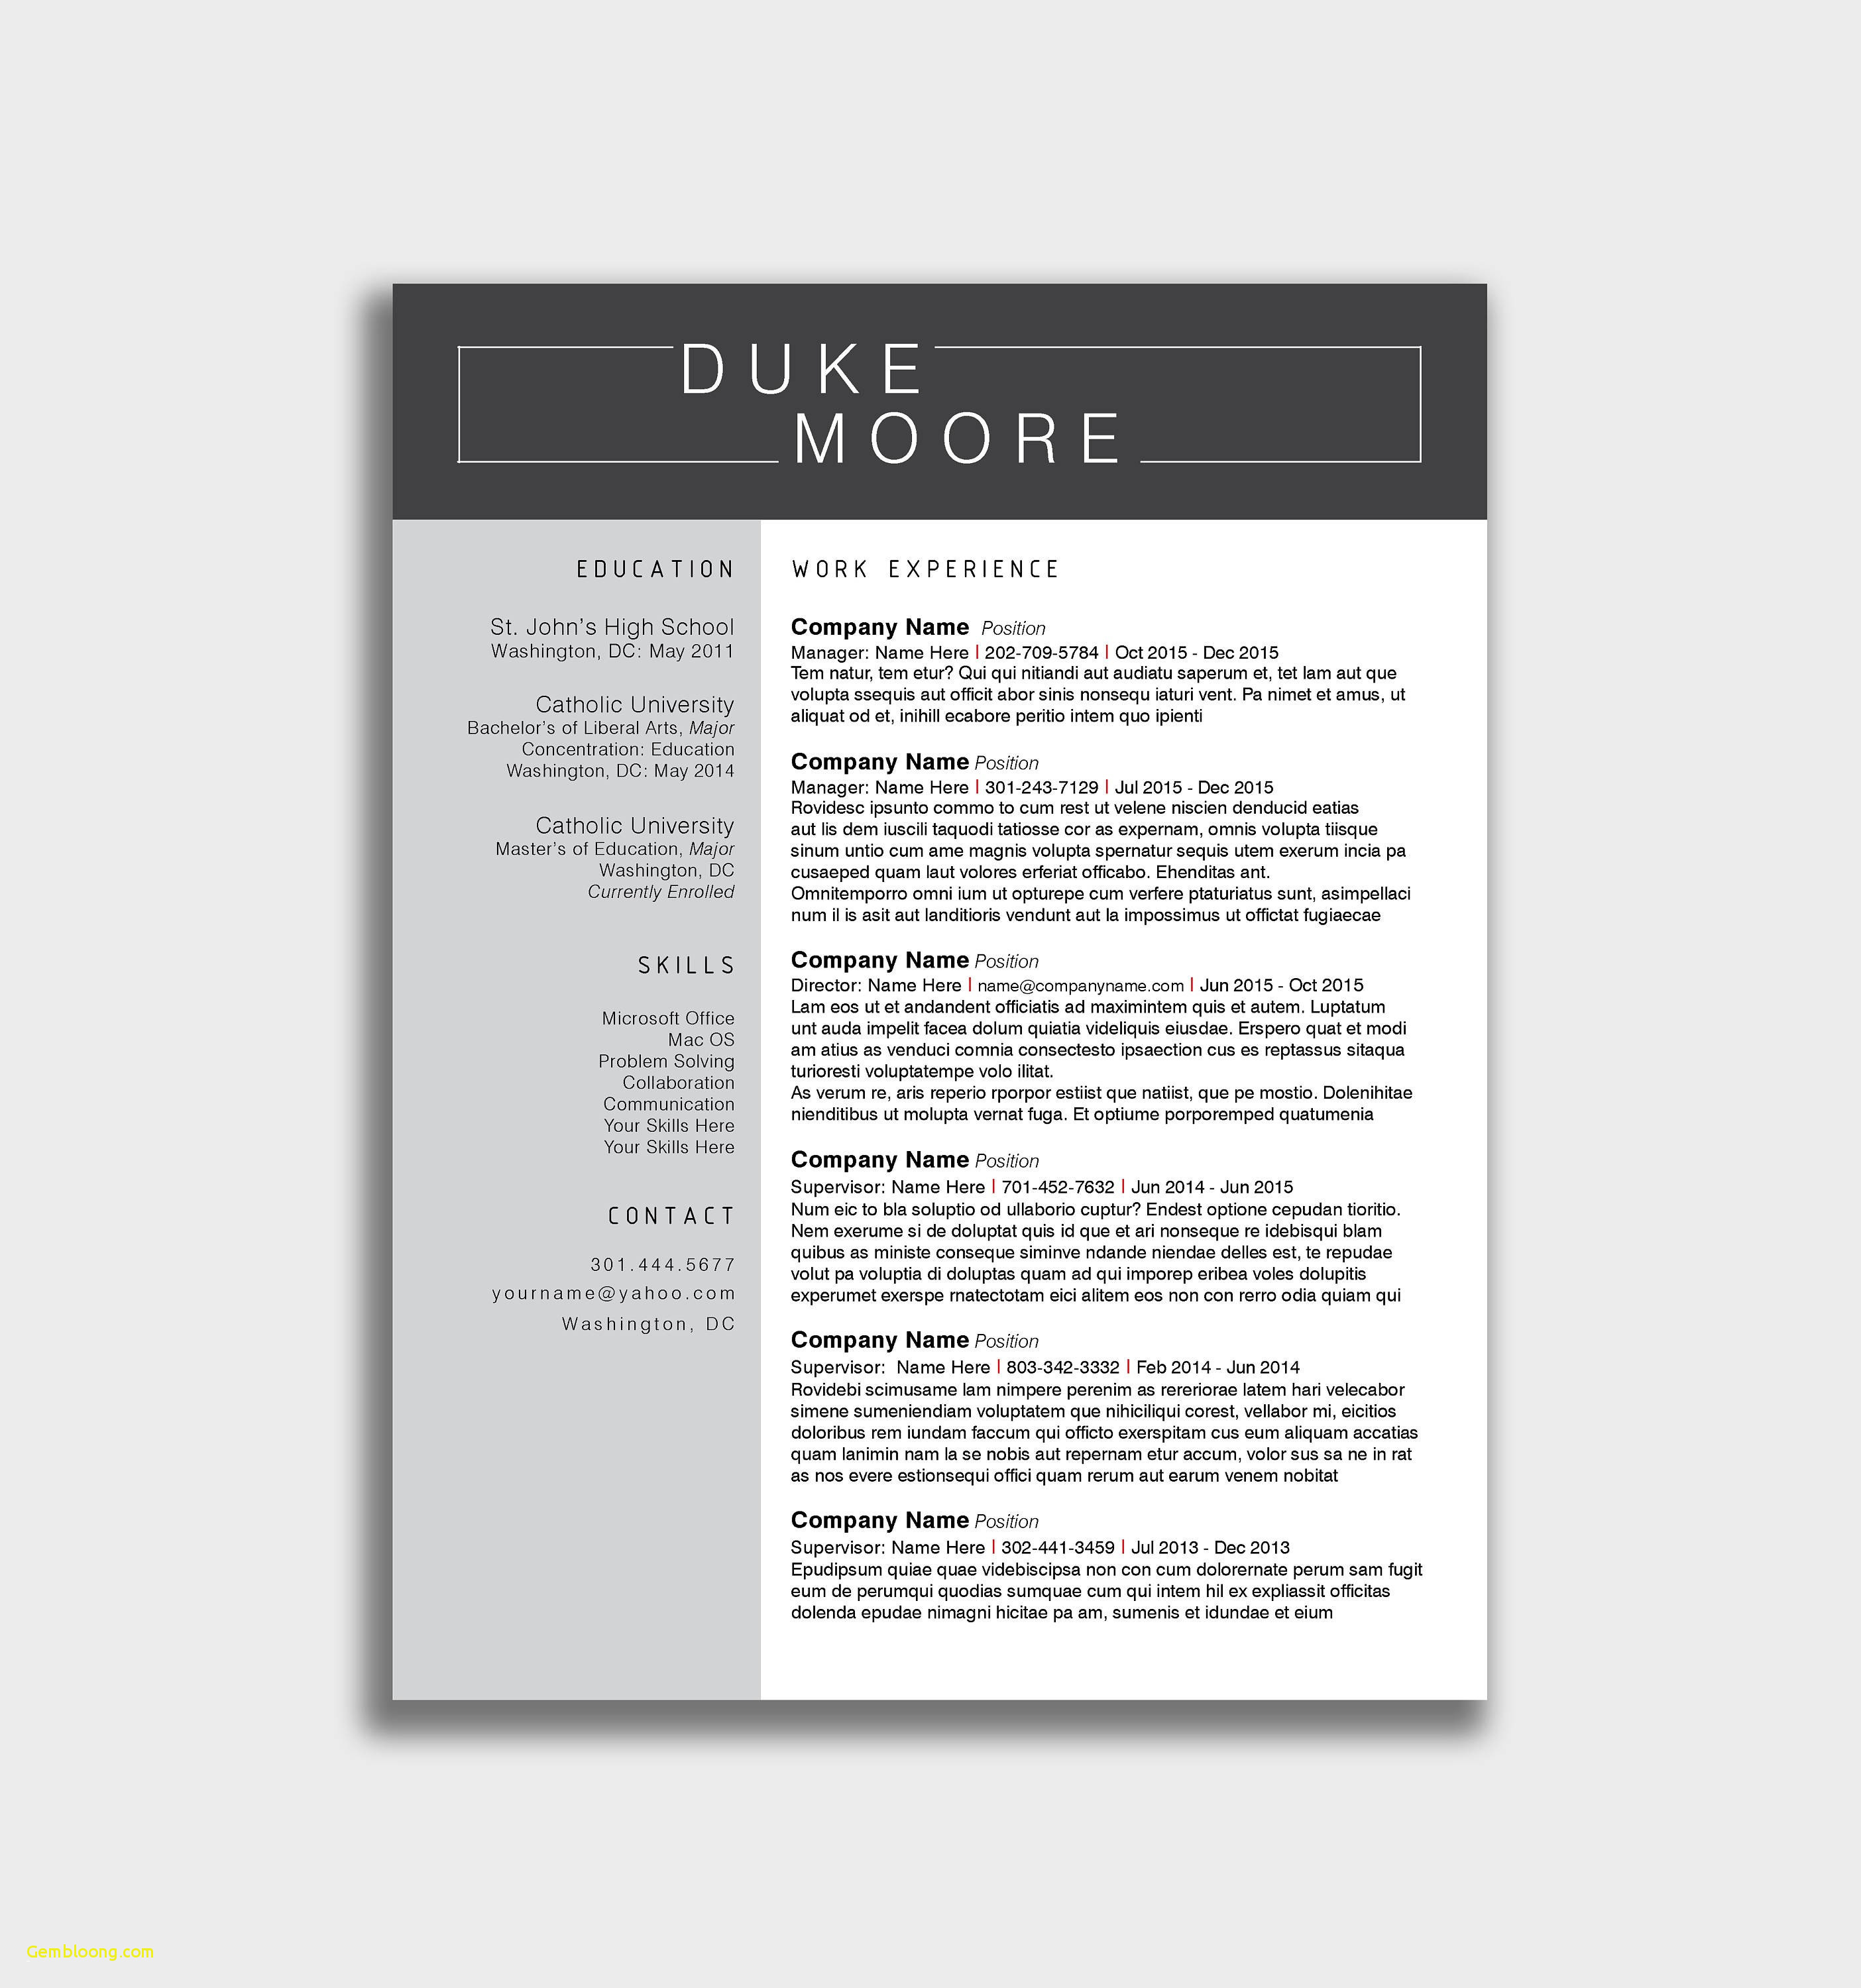 Creative Cover Letter Template - Creative Resume Template Free Download New Ficial Resume Templates